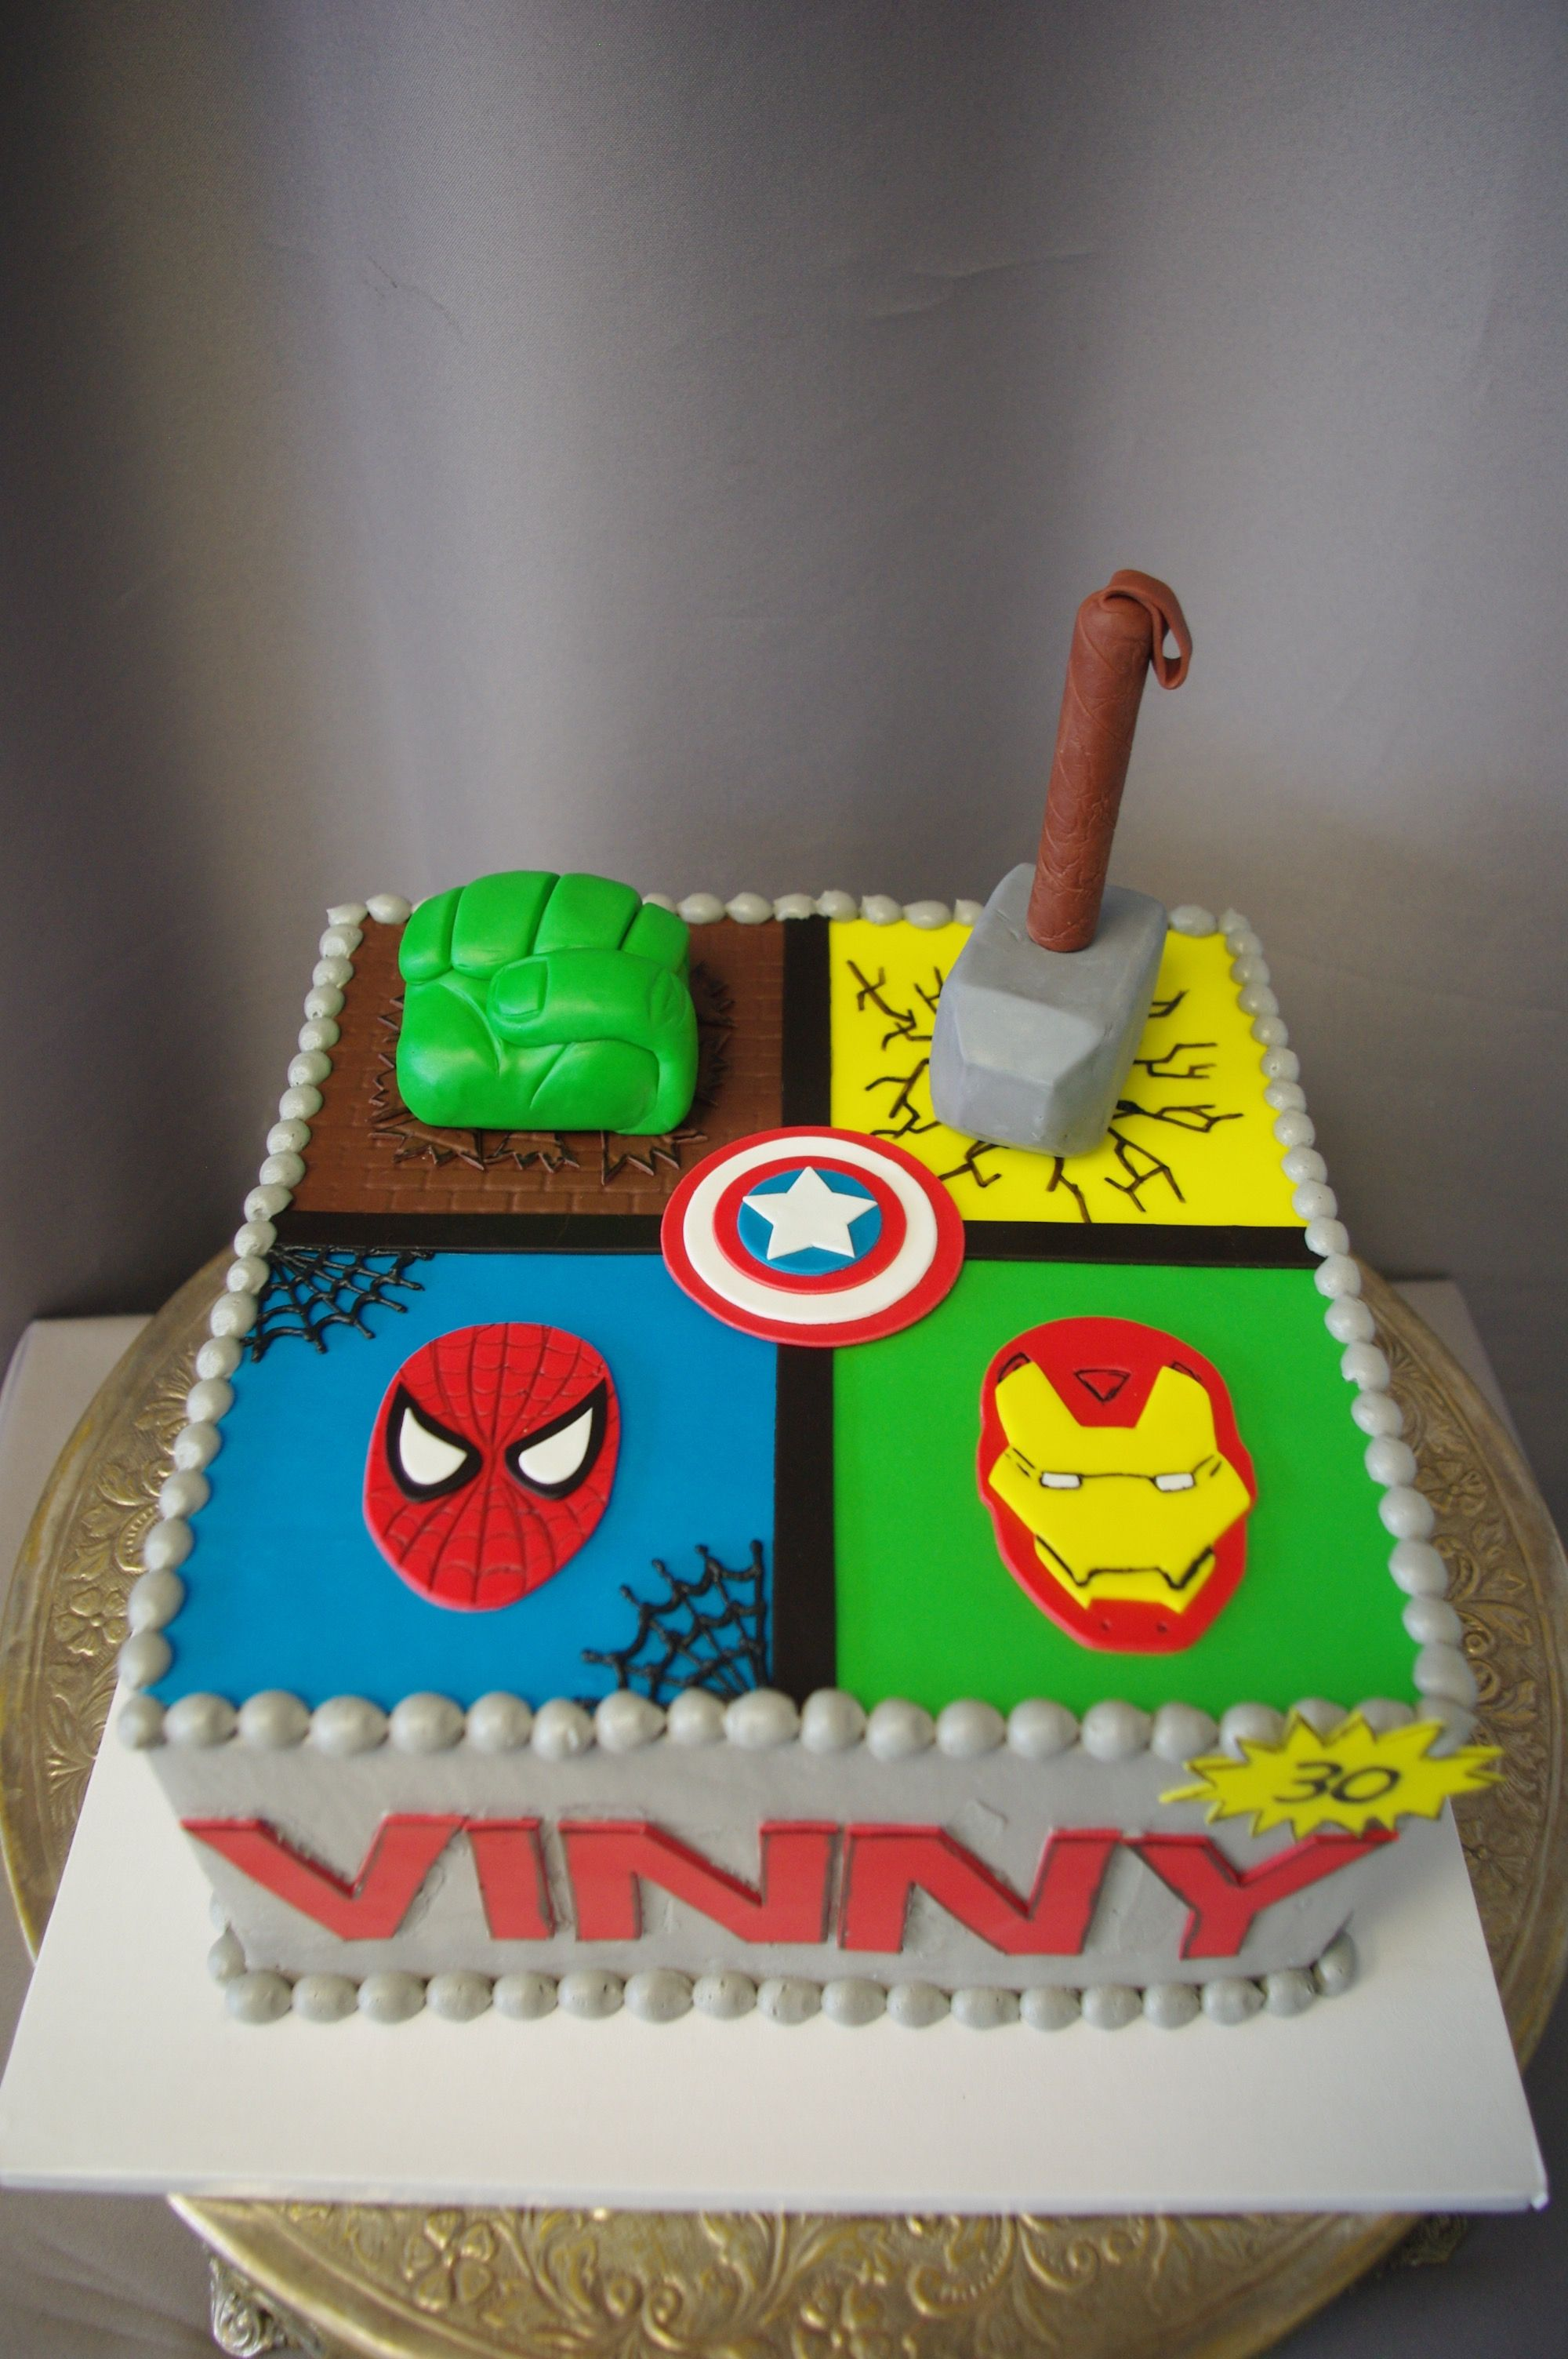 568 Marvel Hero Square Cake